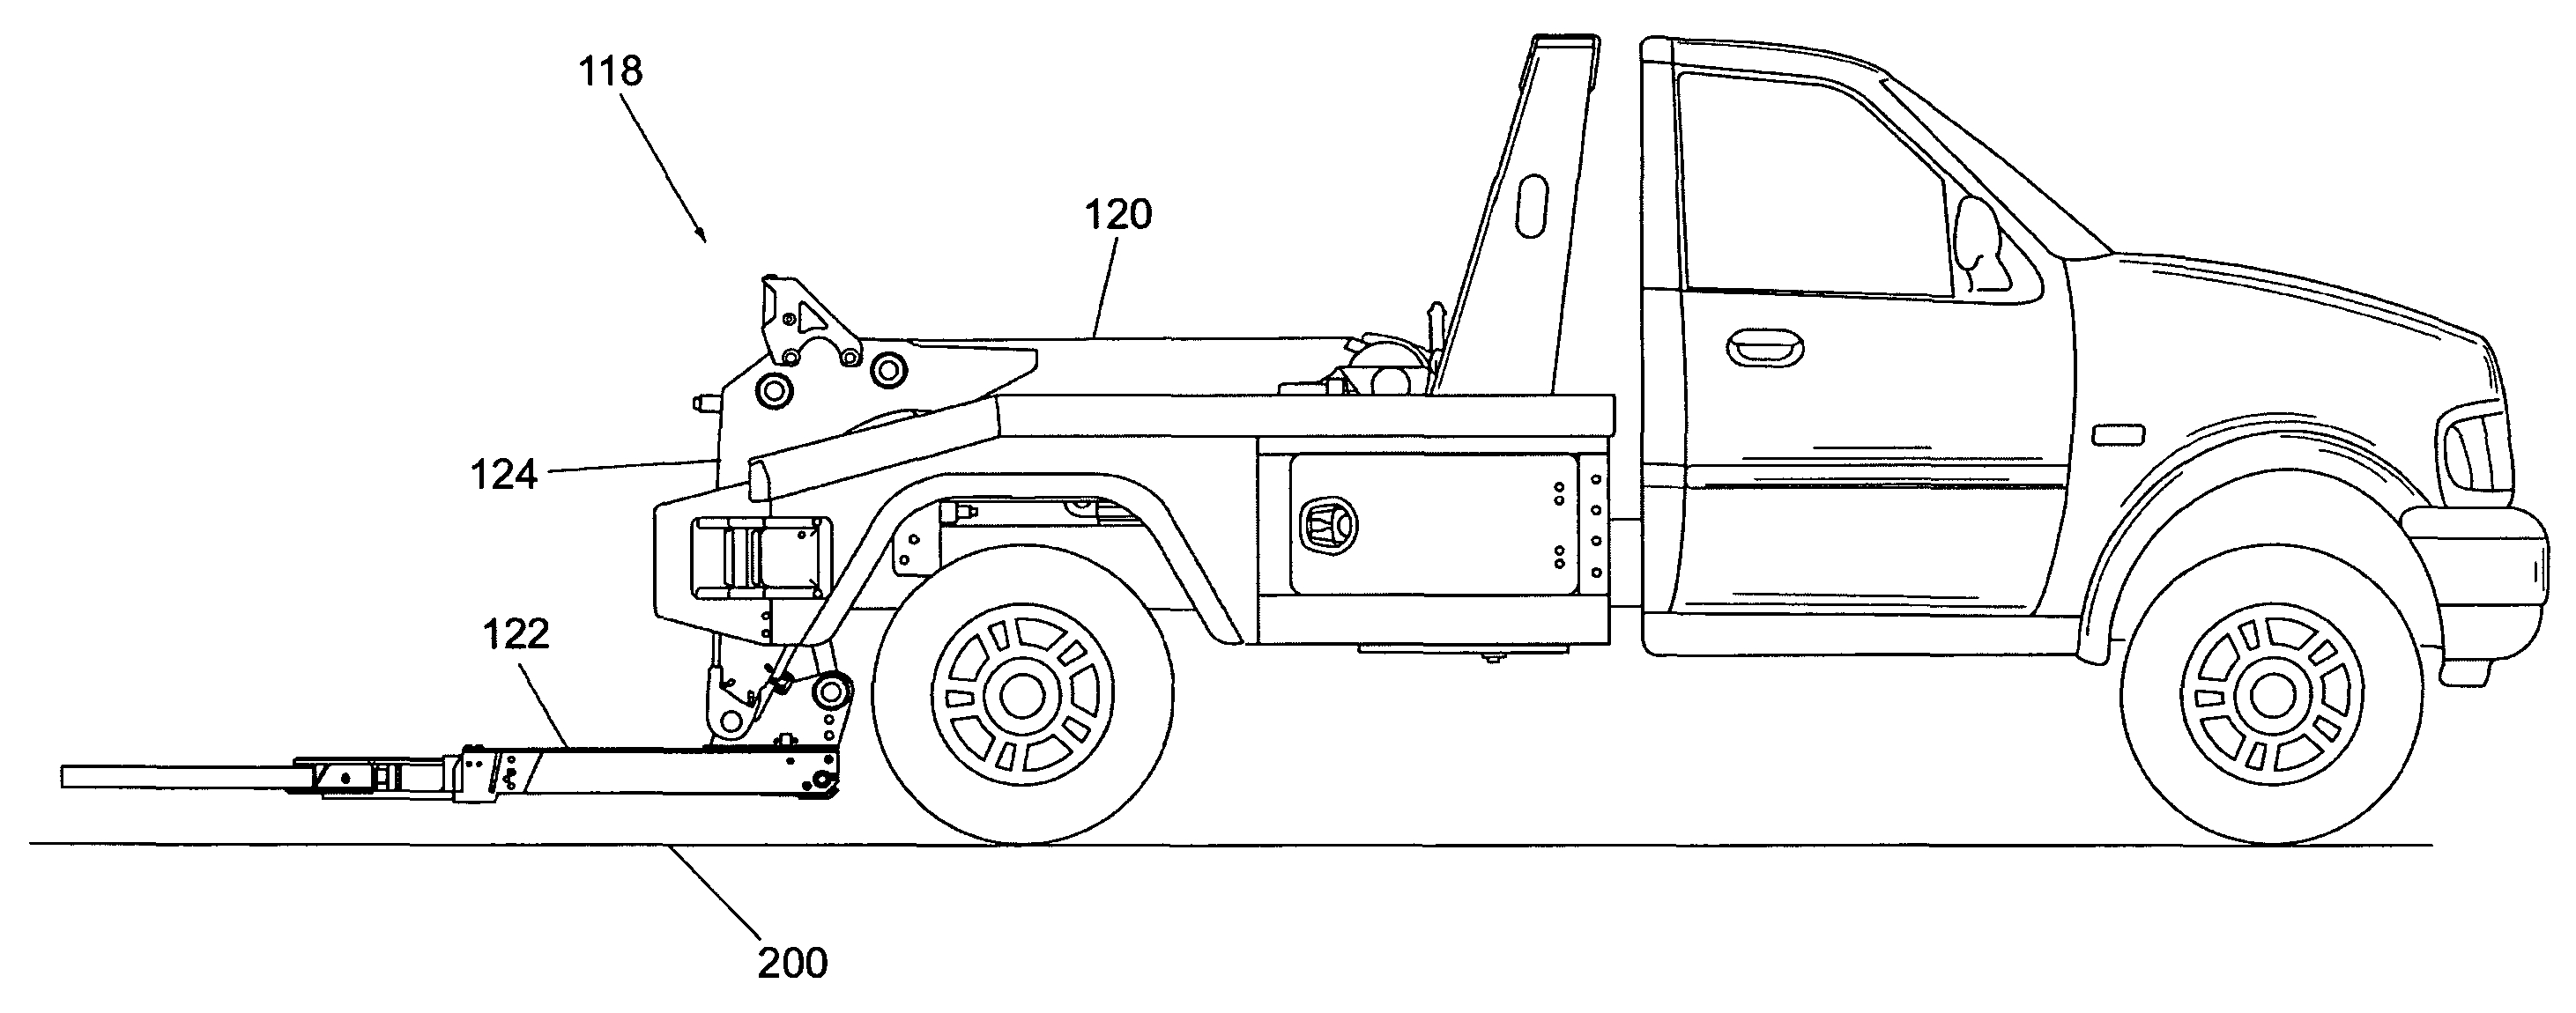 garbage truck coloring page - US